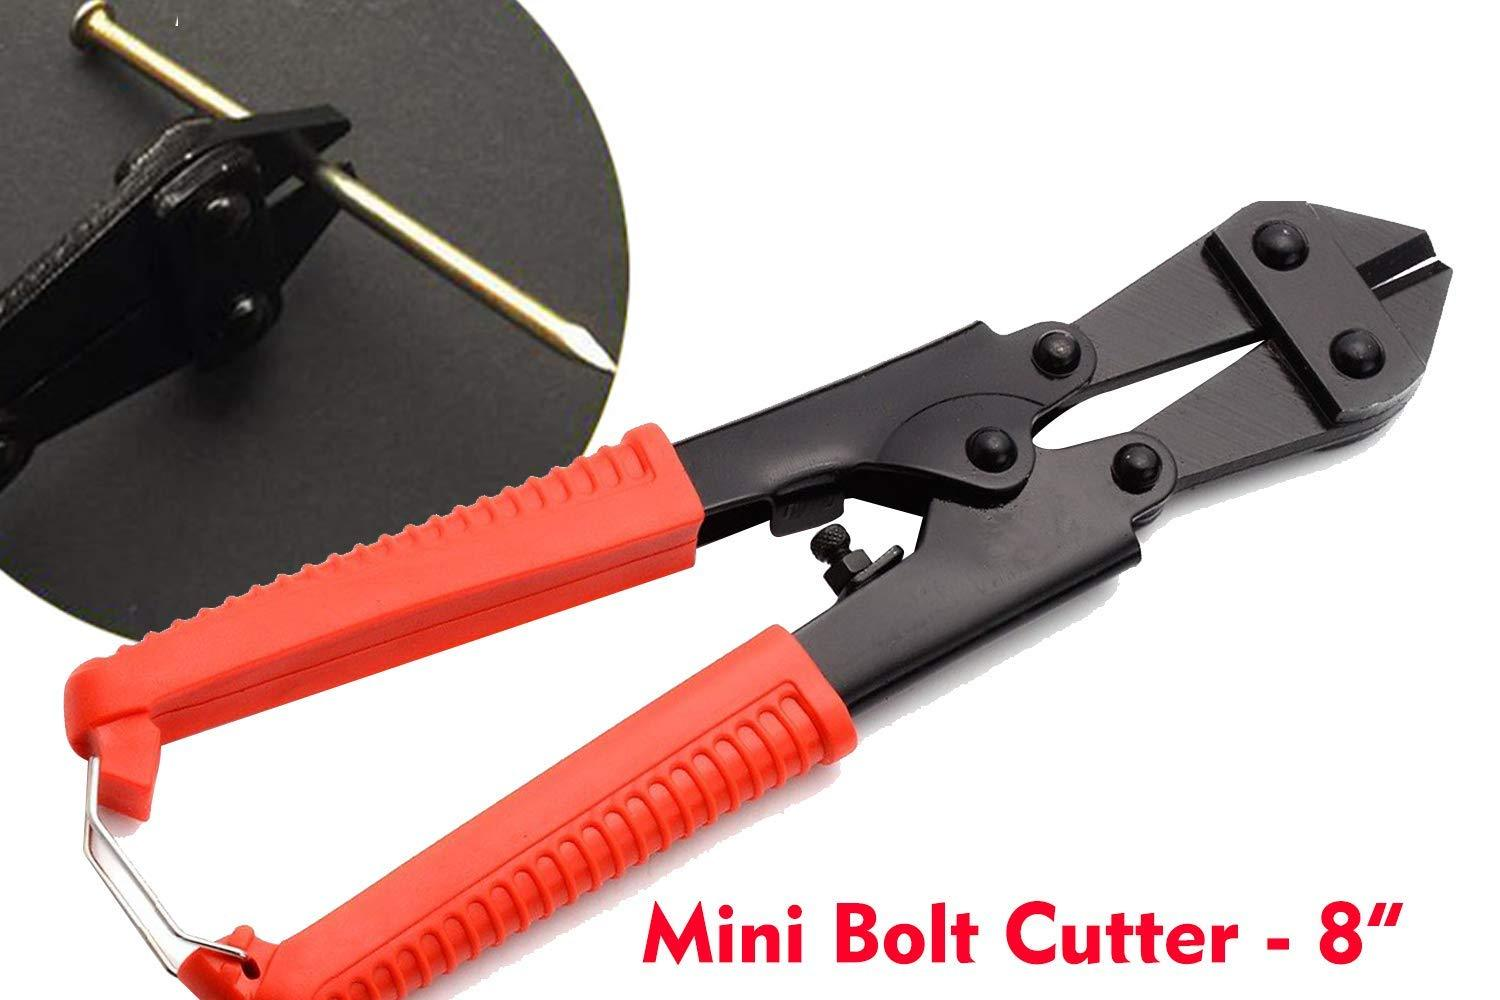 8-inch-mini-bolt-and-wire-cutter-bolt-clipper-cable-cutter-wire-clamp-cutting-mini-bolt-cutter-combination-snap-ring-plier-length-8-inch